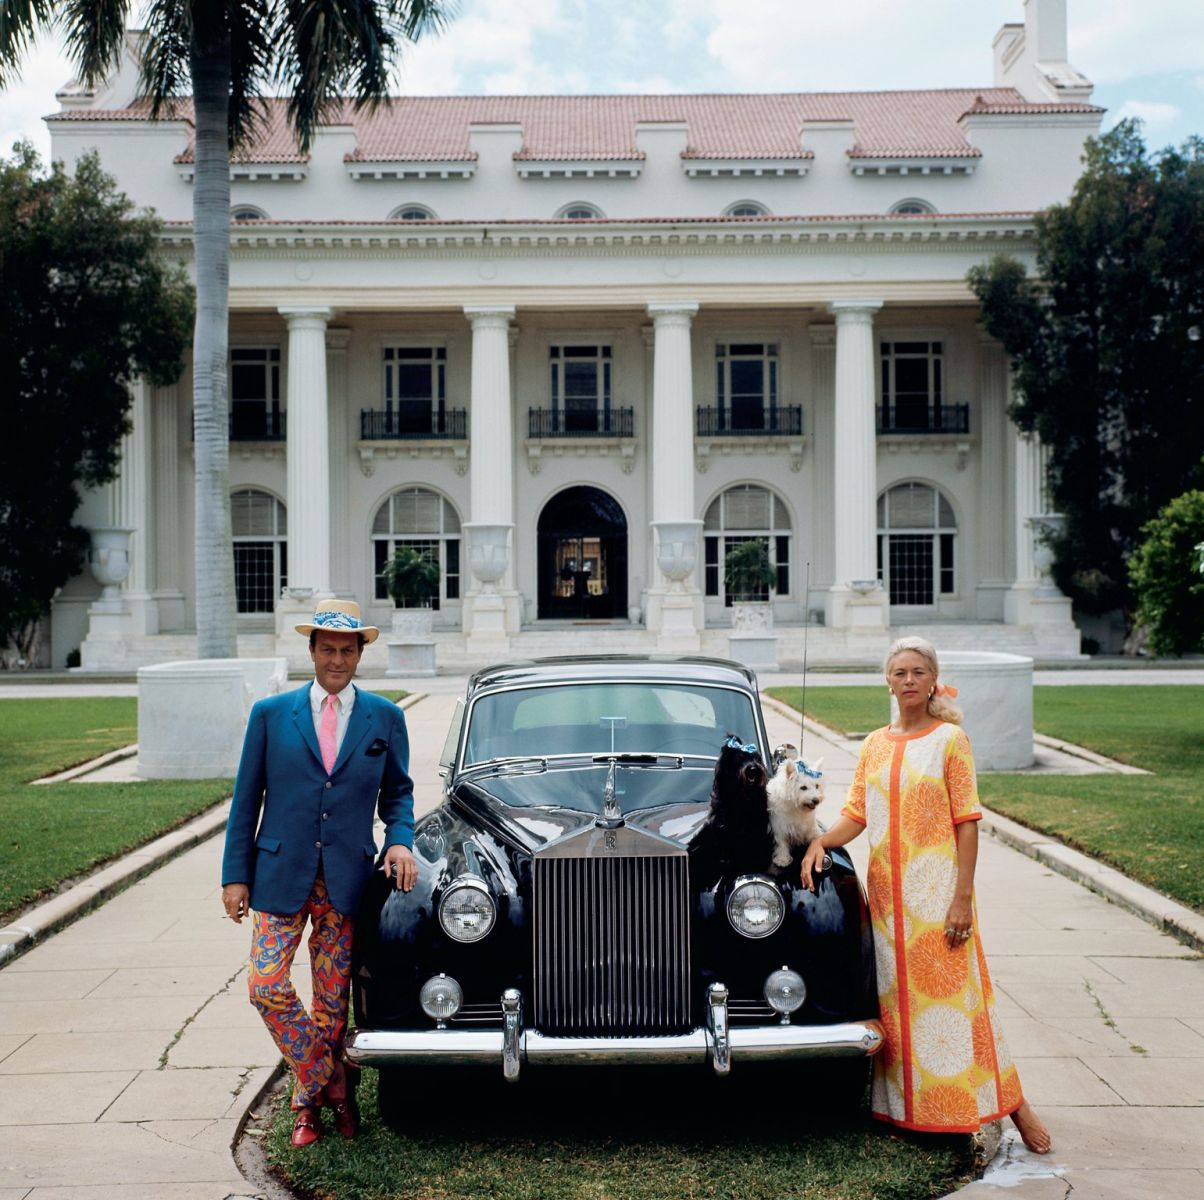 Mr.-and-Mrs.-Leas-at-Flagler-Museum.-1968